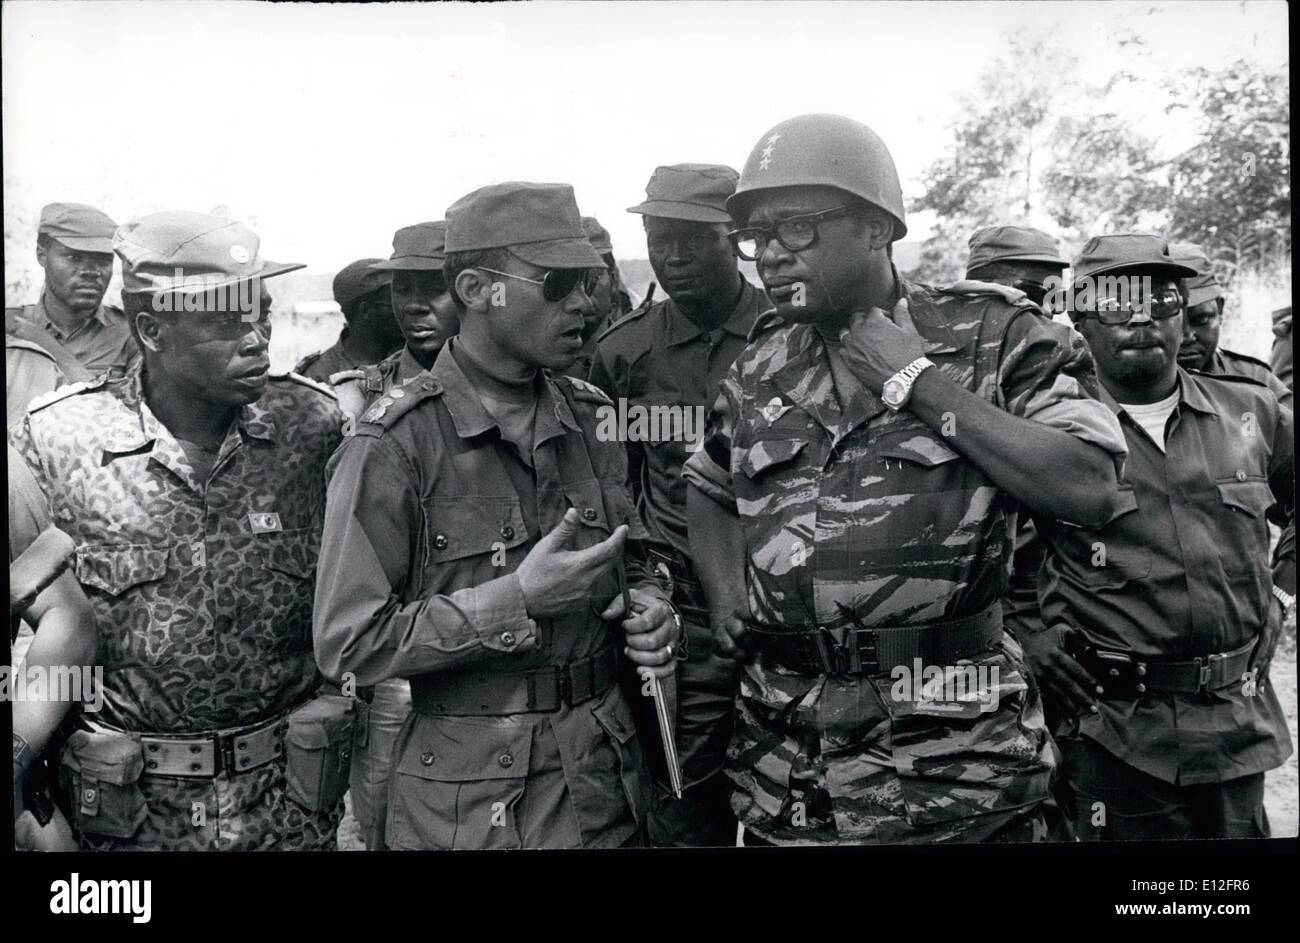 Jan. 09, 2012 - ZAIRE: (Near Mutshatsha). President Mabutu chats with Commander of the Moroccan troops Col Loubaris. - Stock Image